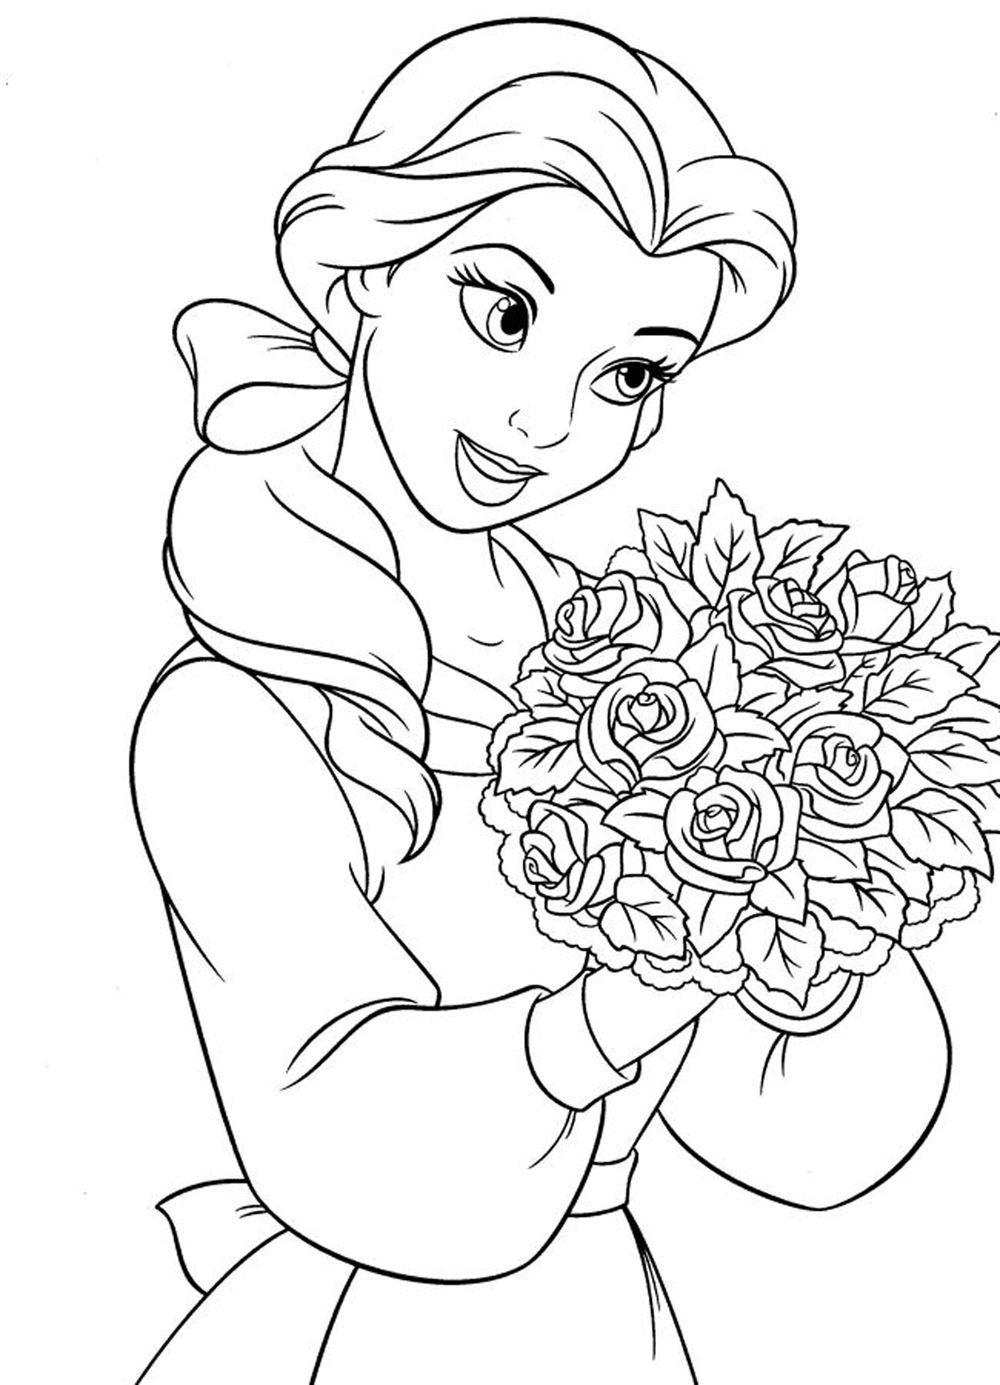 colouring pictures girls detailed coloring pages for girls at getcoloringscom pictures girls colouring